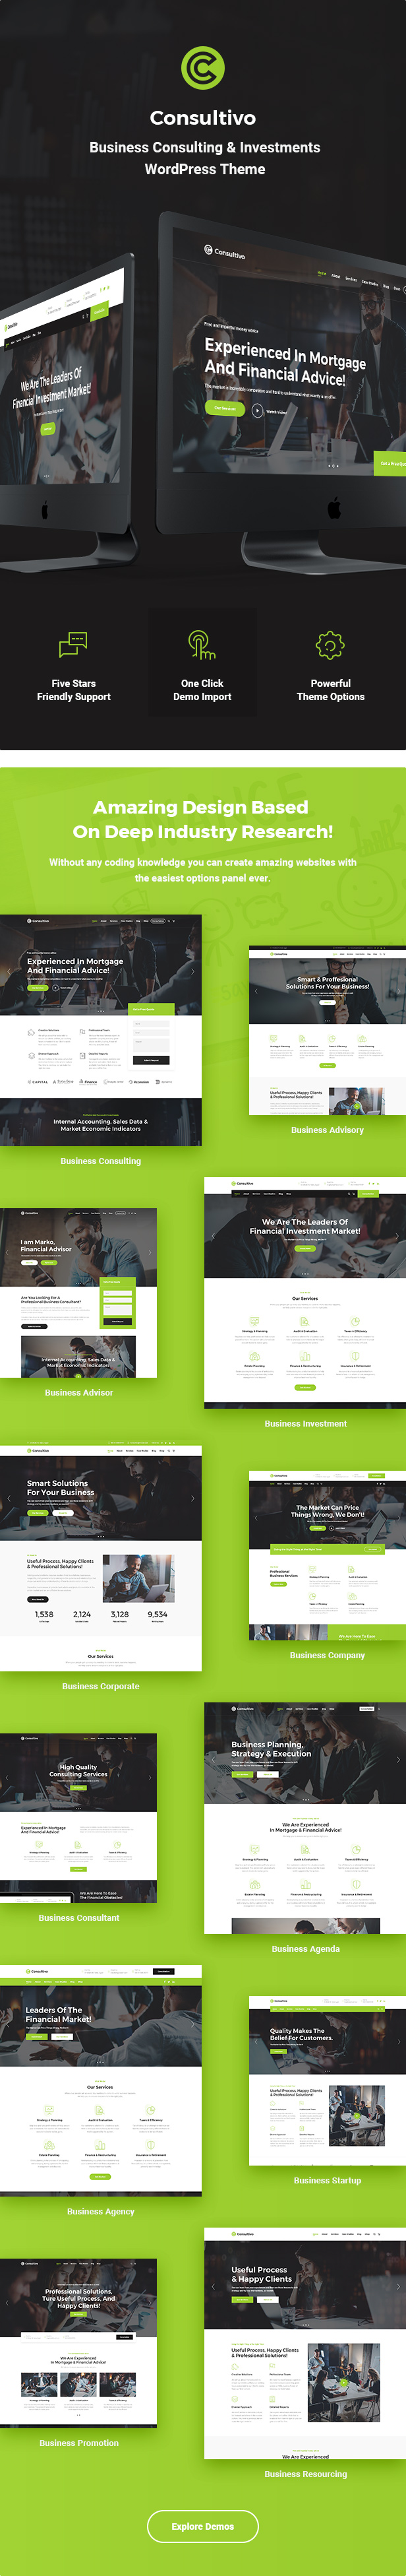 Consultivo-Business Consulting and Investment WordPress Theme-5